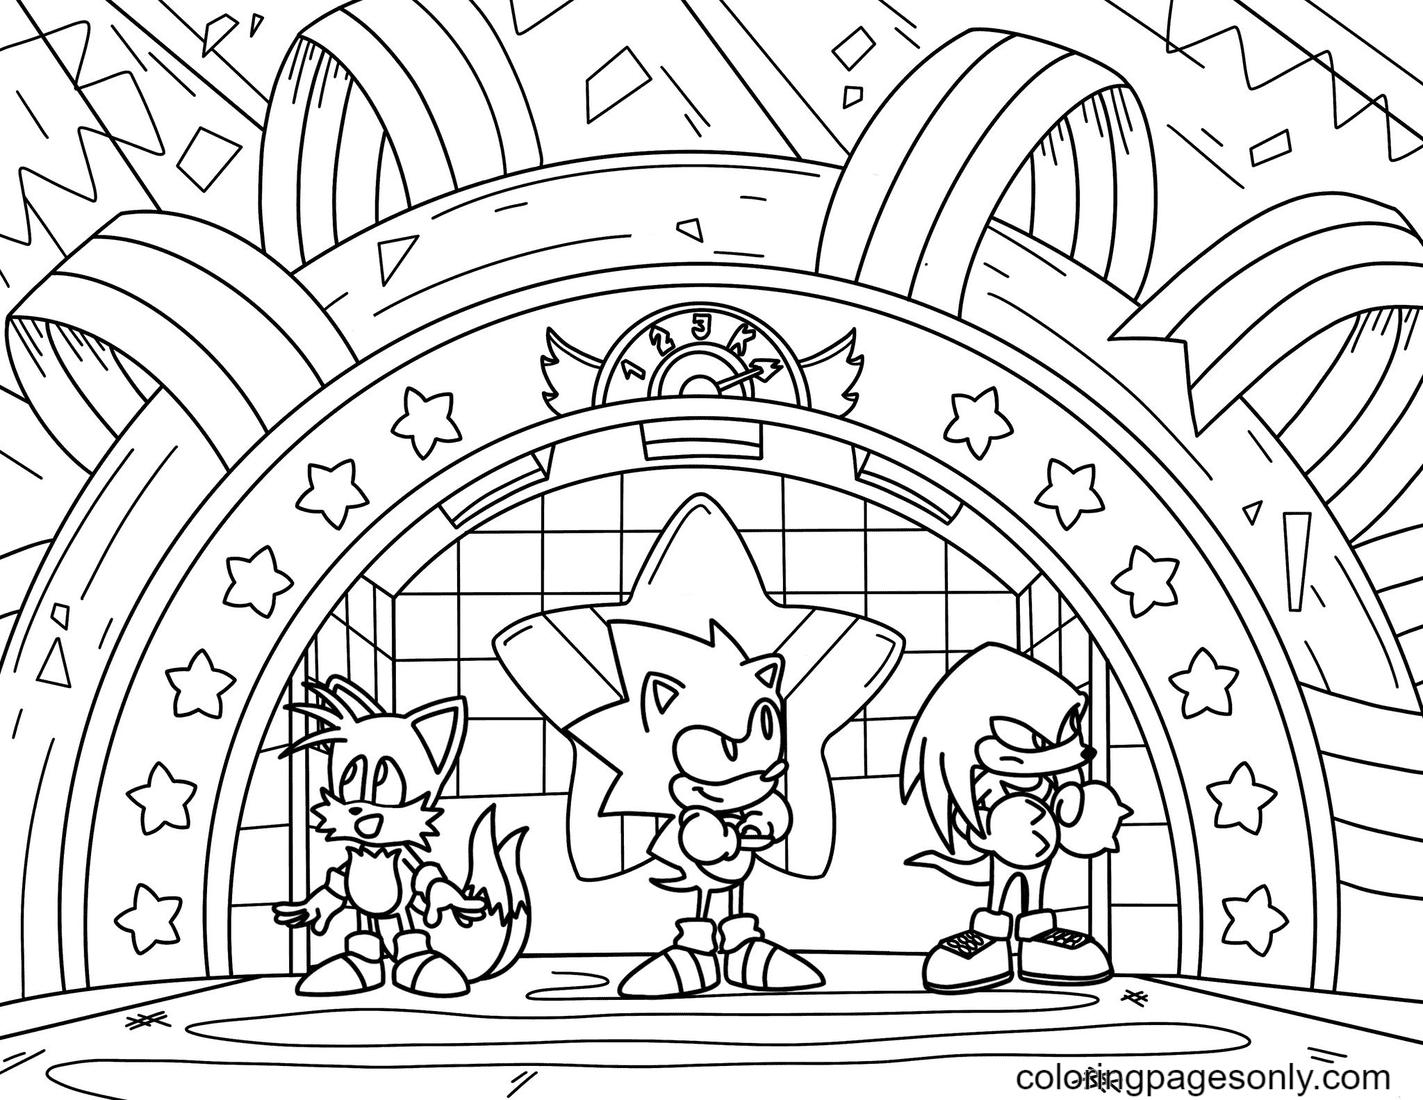 Sonic the Hedgehog Happy Friday Coloring Page